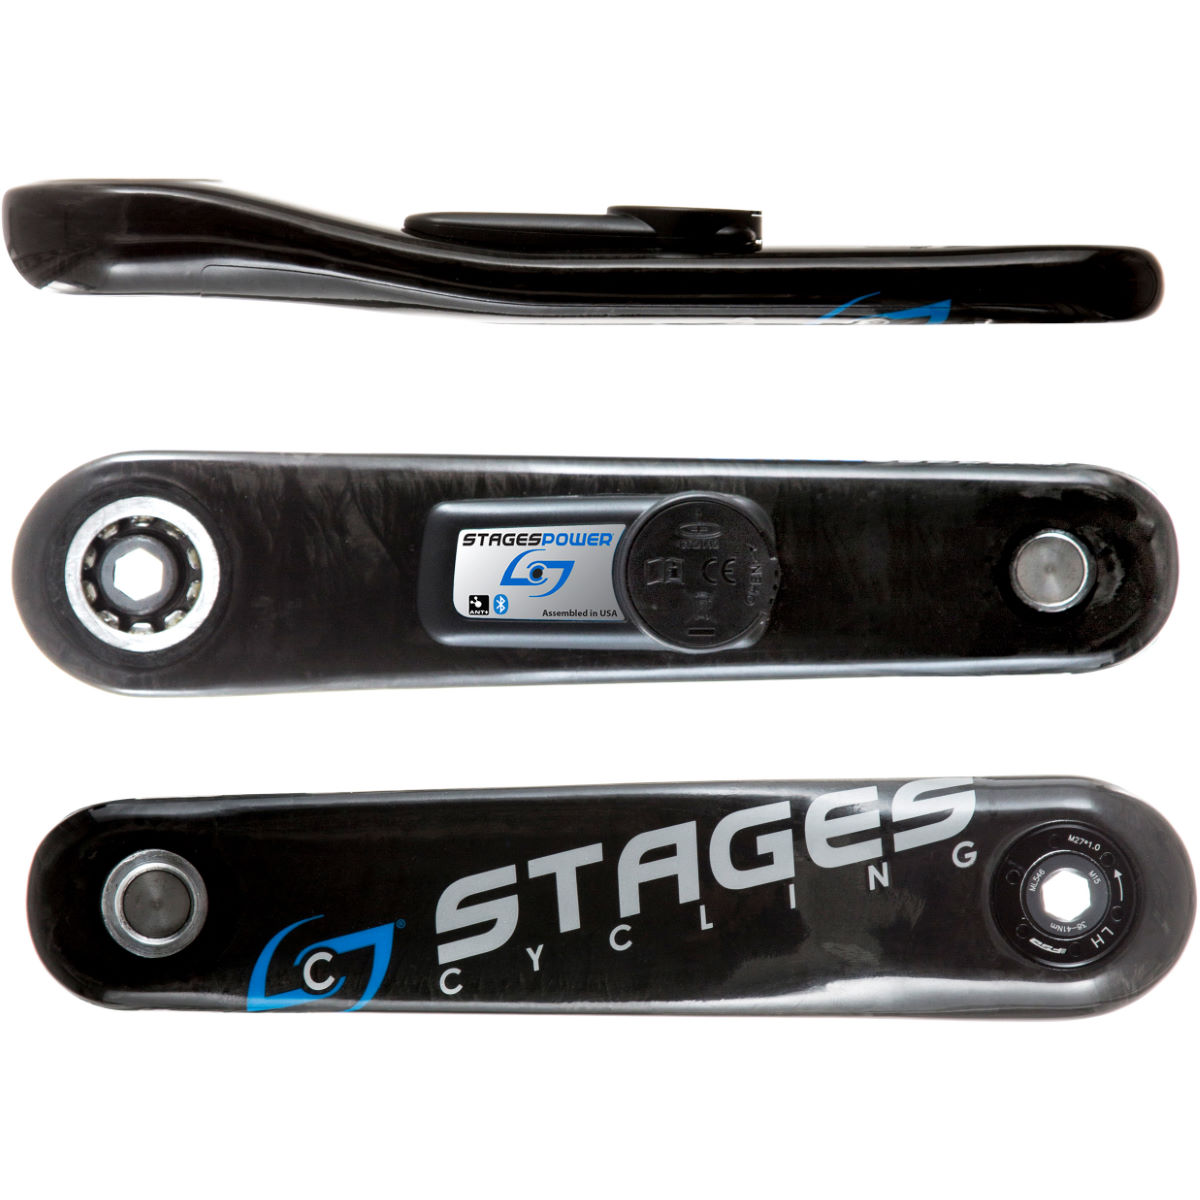 Stages Cycling Power G3 L - Stages Carbon Gxp Mtb - 175mm Black